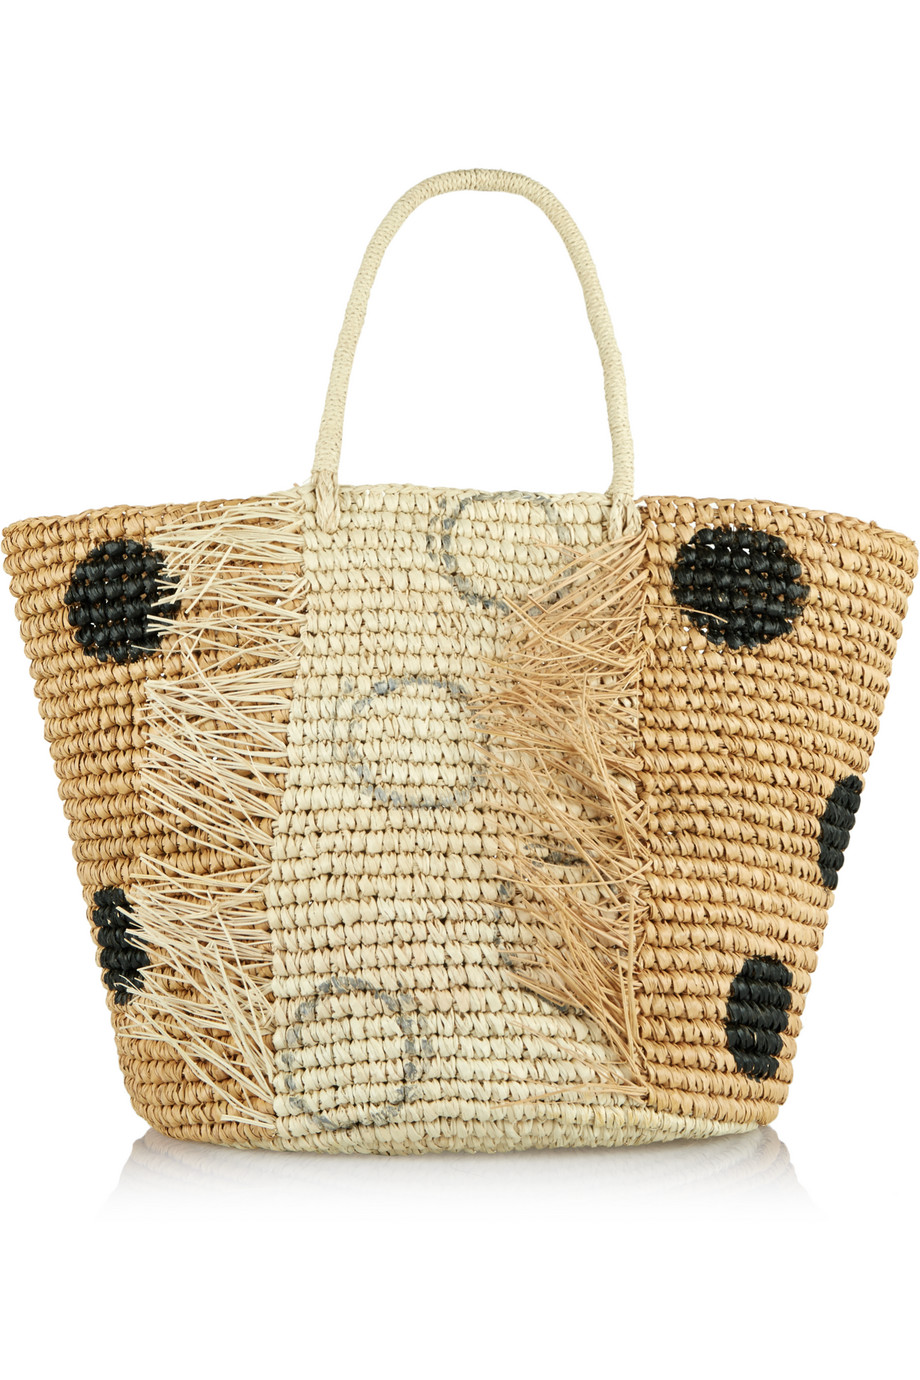 Sensi Studio Polka-Dot Woven Toquilla Straw Tote, Off-White, Women's, Size: One Size